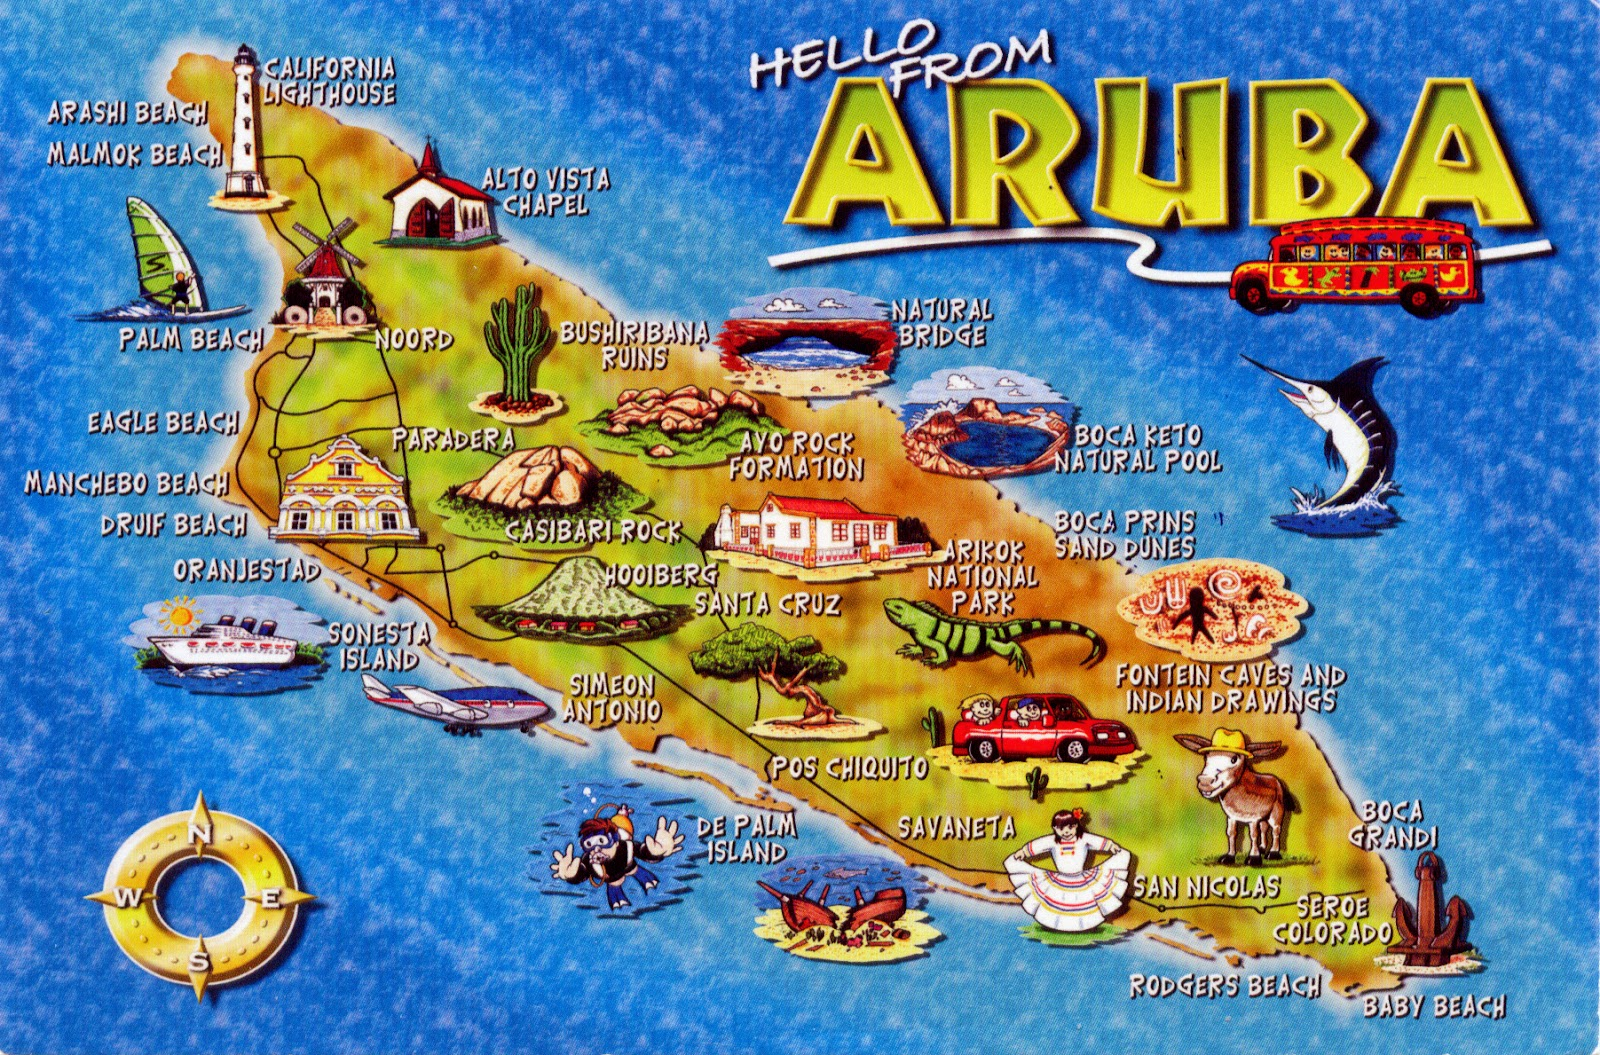 WORLD COME TO MY HOME NETHERLANDS Aruba - Caribbean map aruba